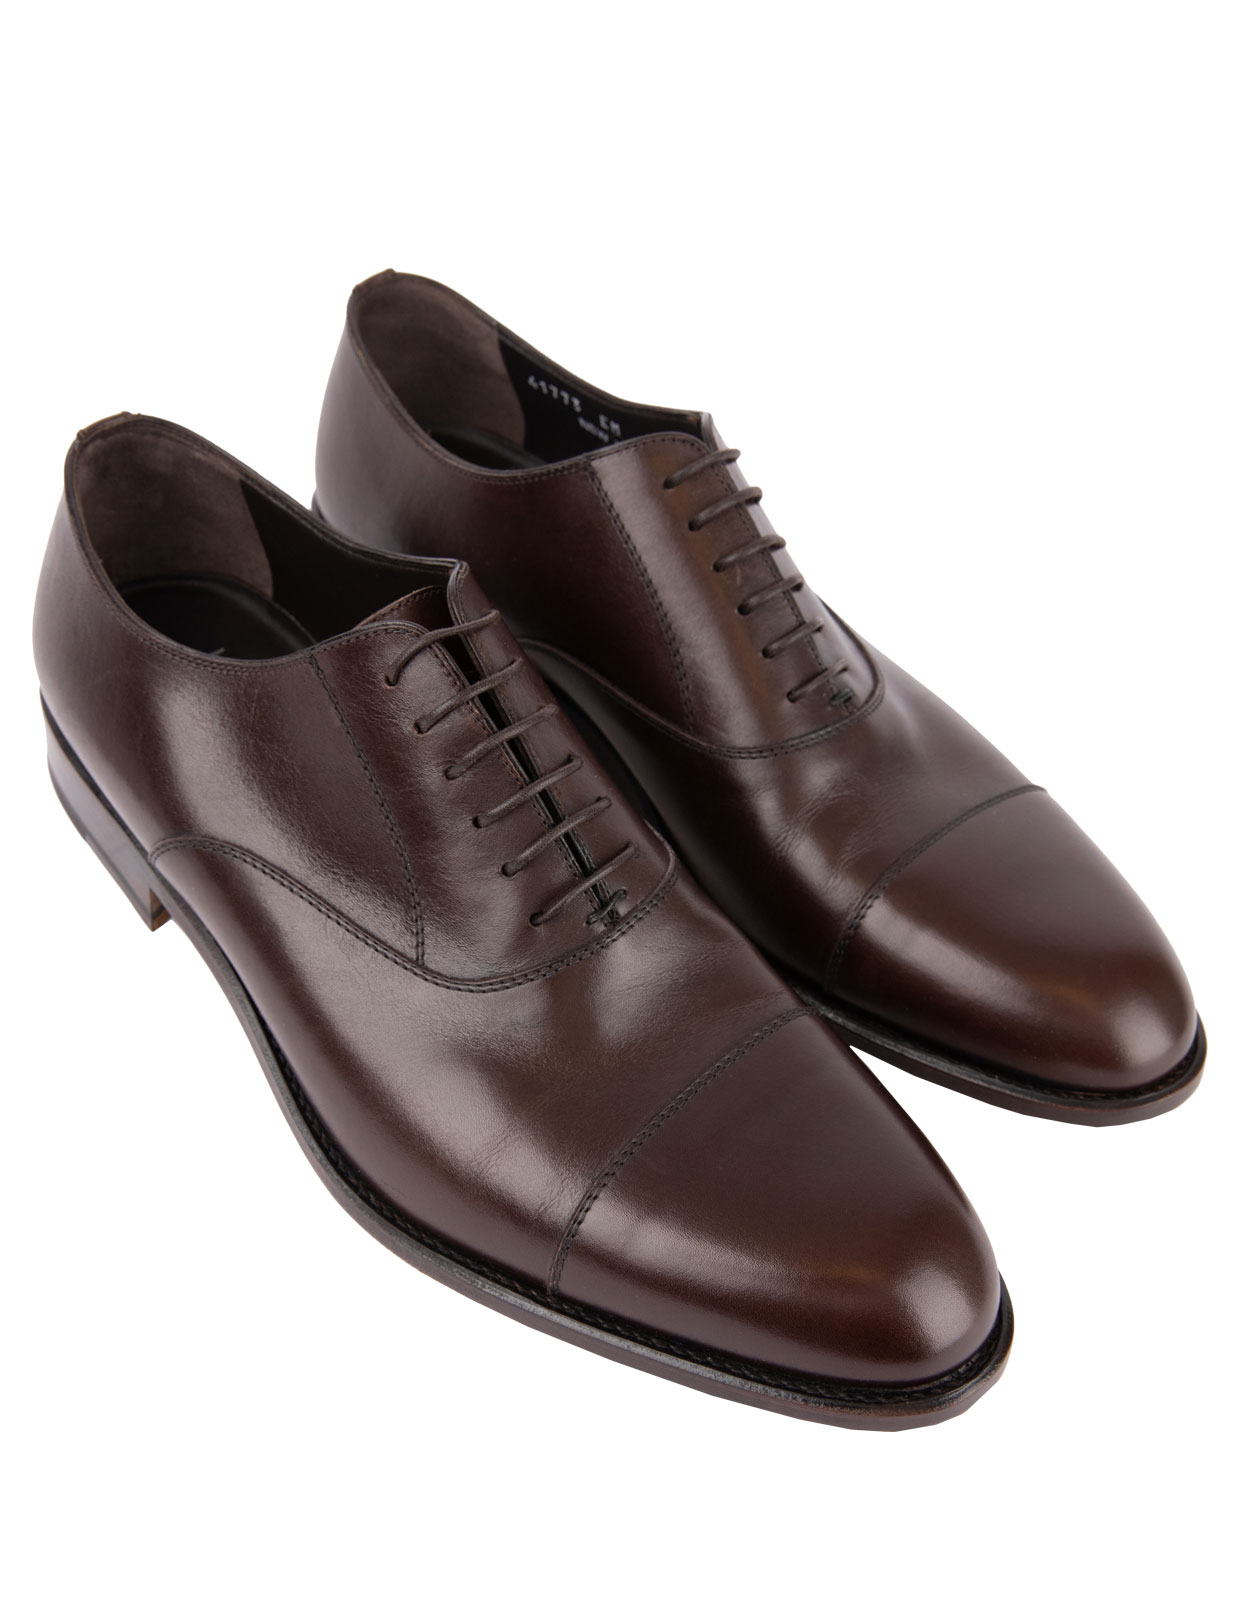 New York Oxford Shoes Calfskin Brown